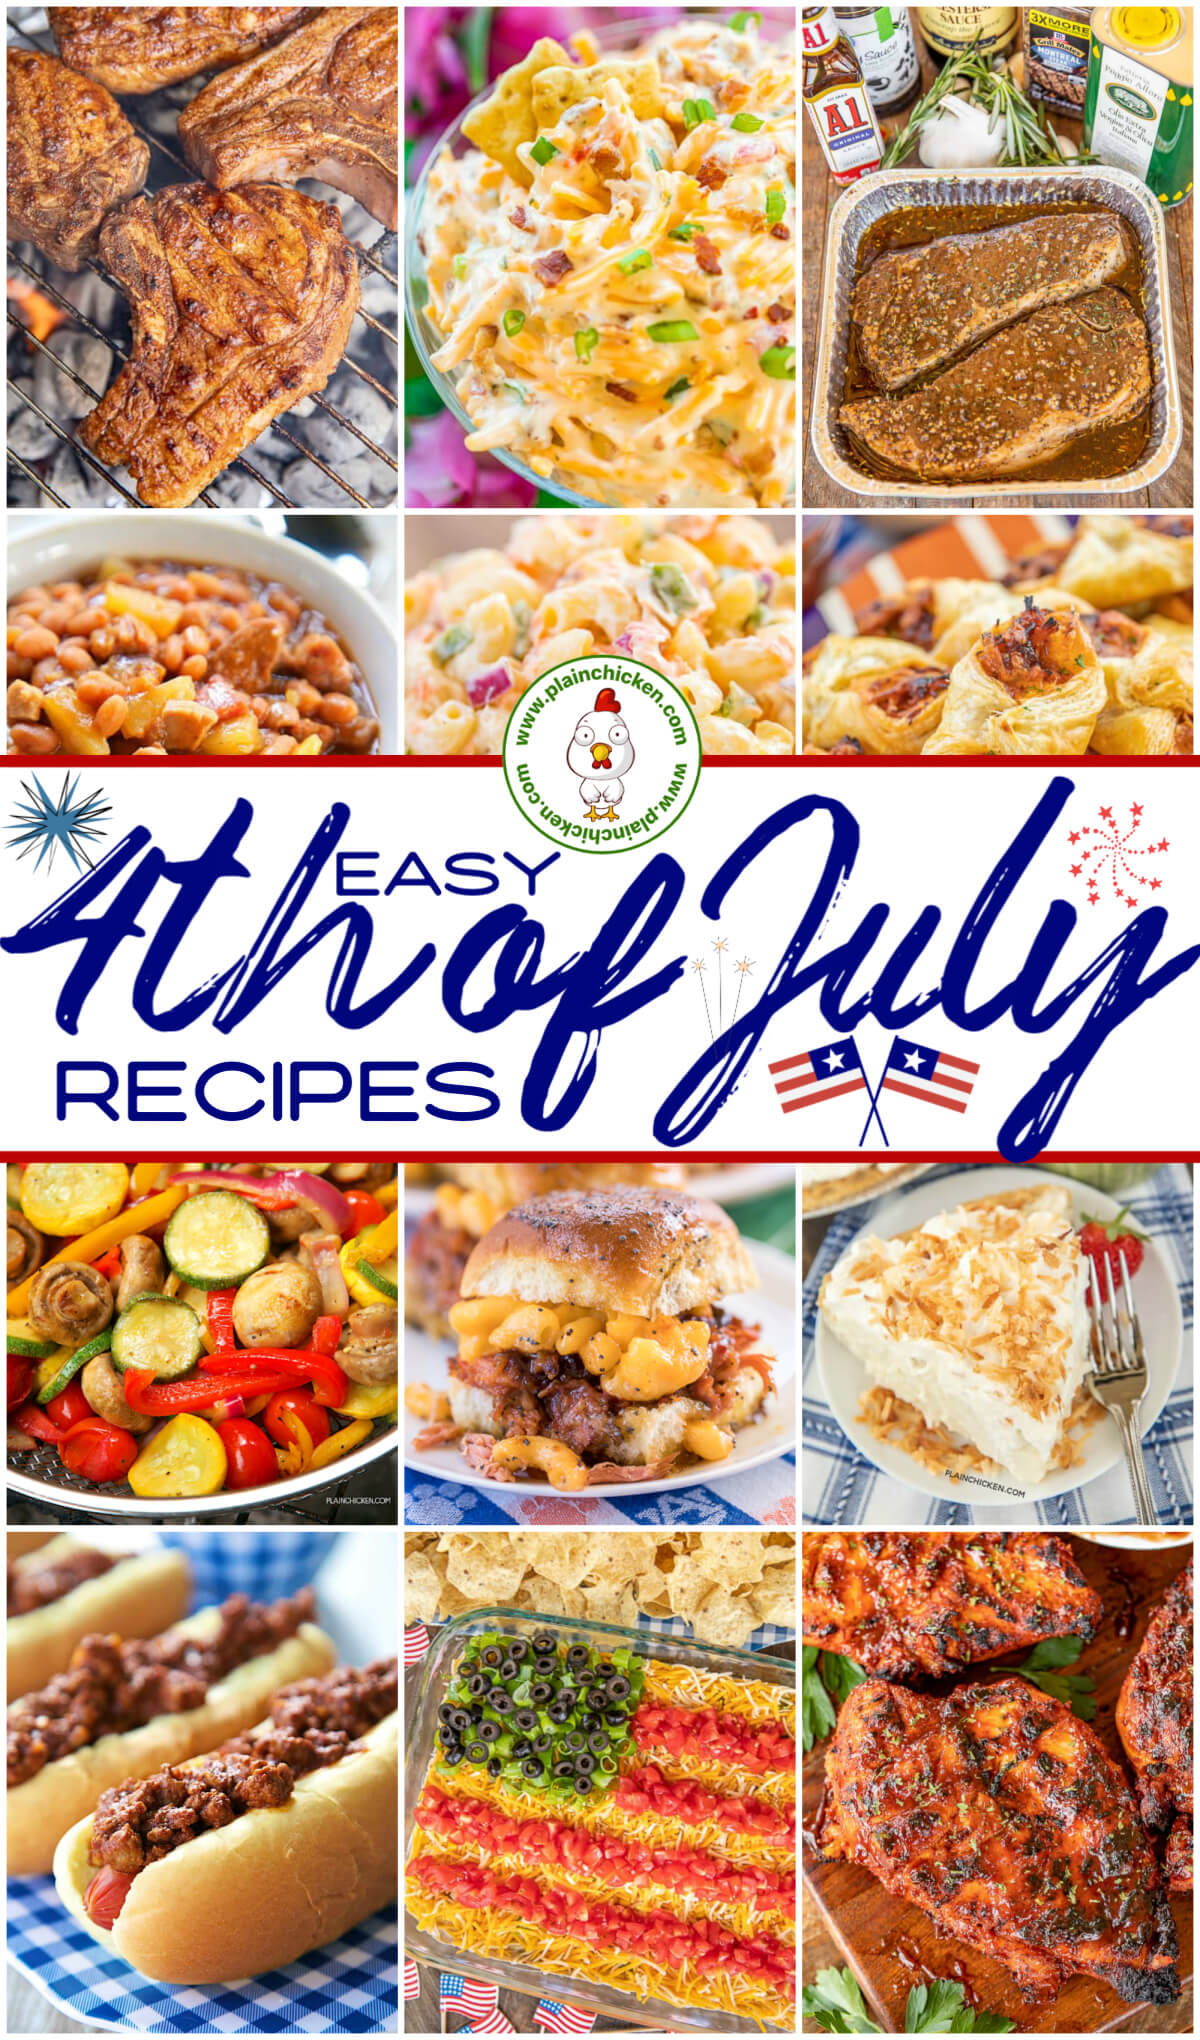 collage of 4th of July food photos